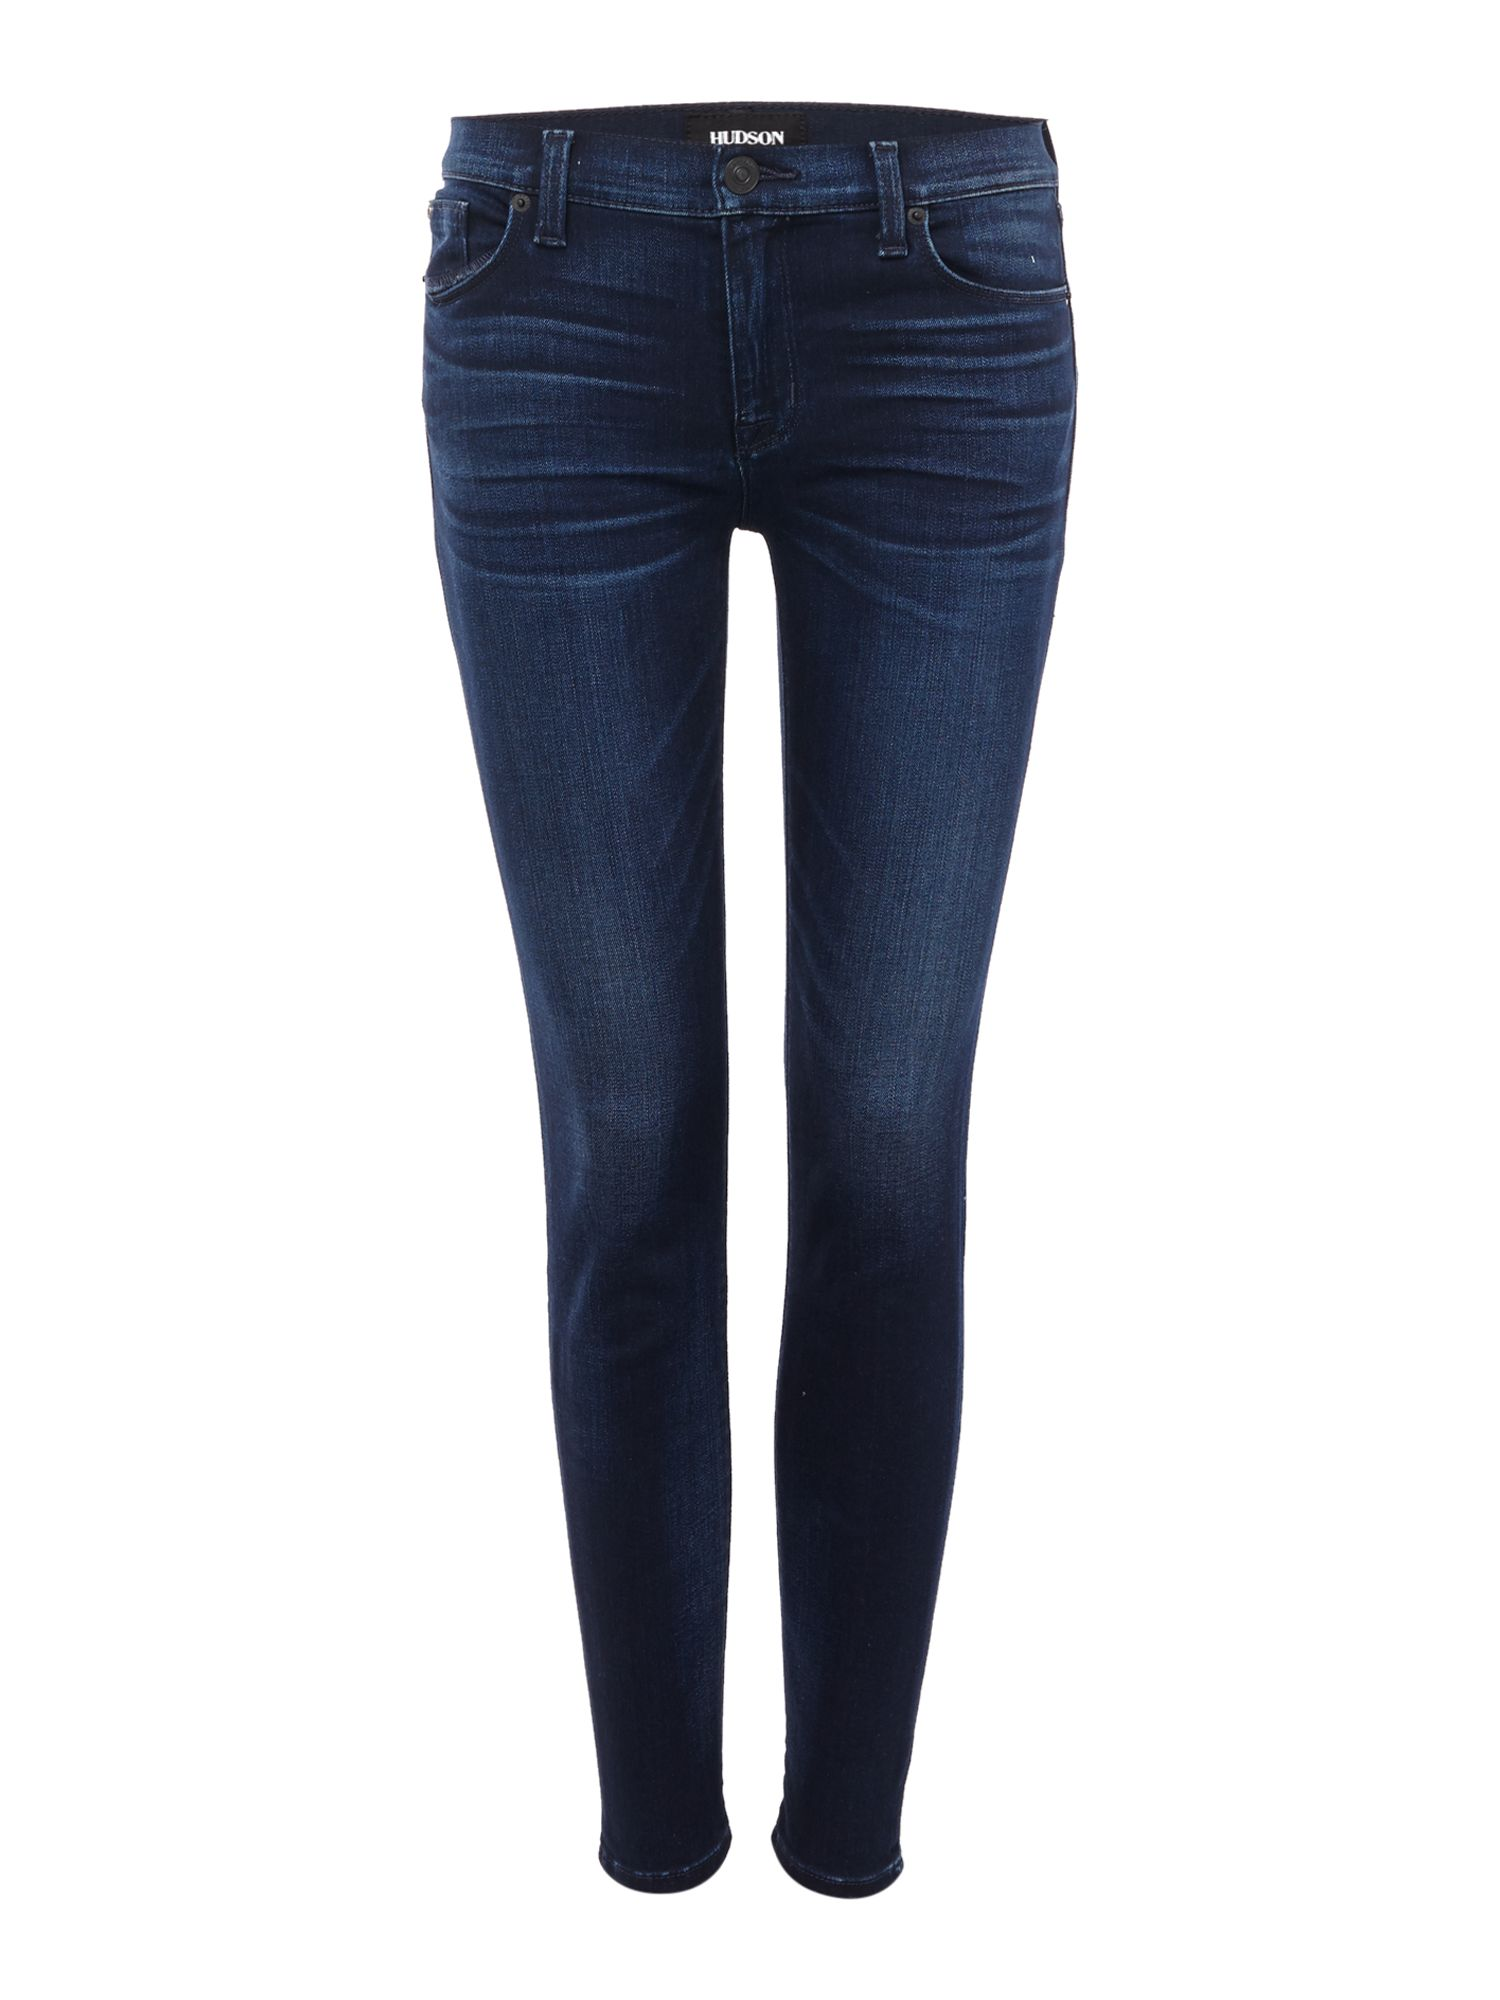 Hudson Jeans Krista ankle brushed cotton jeans in recruit Denim Dark Wash